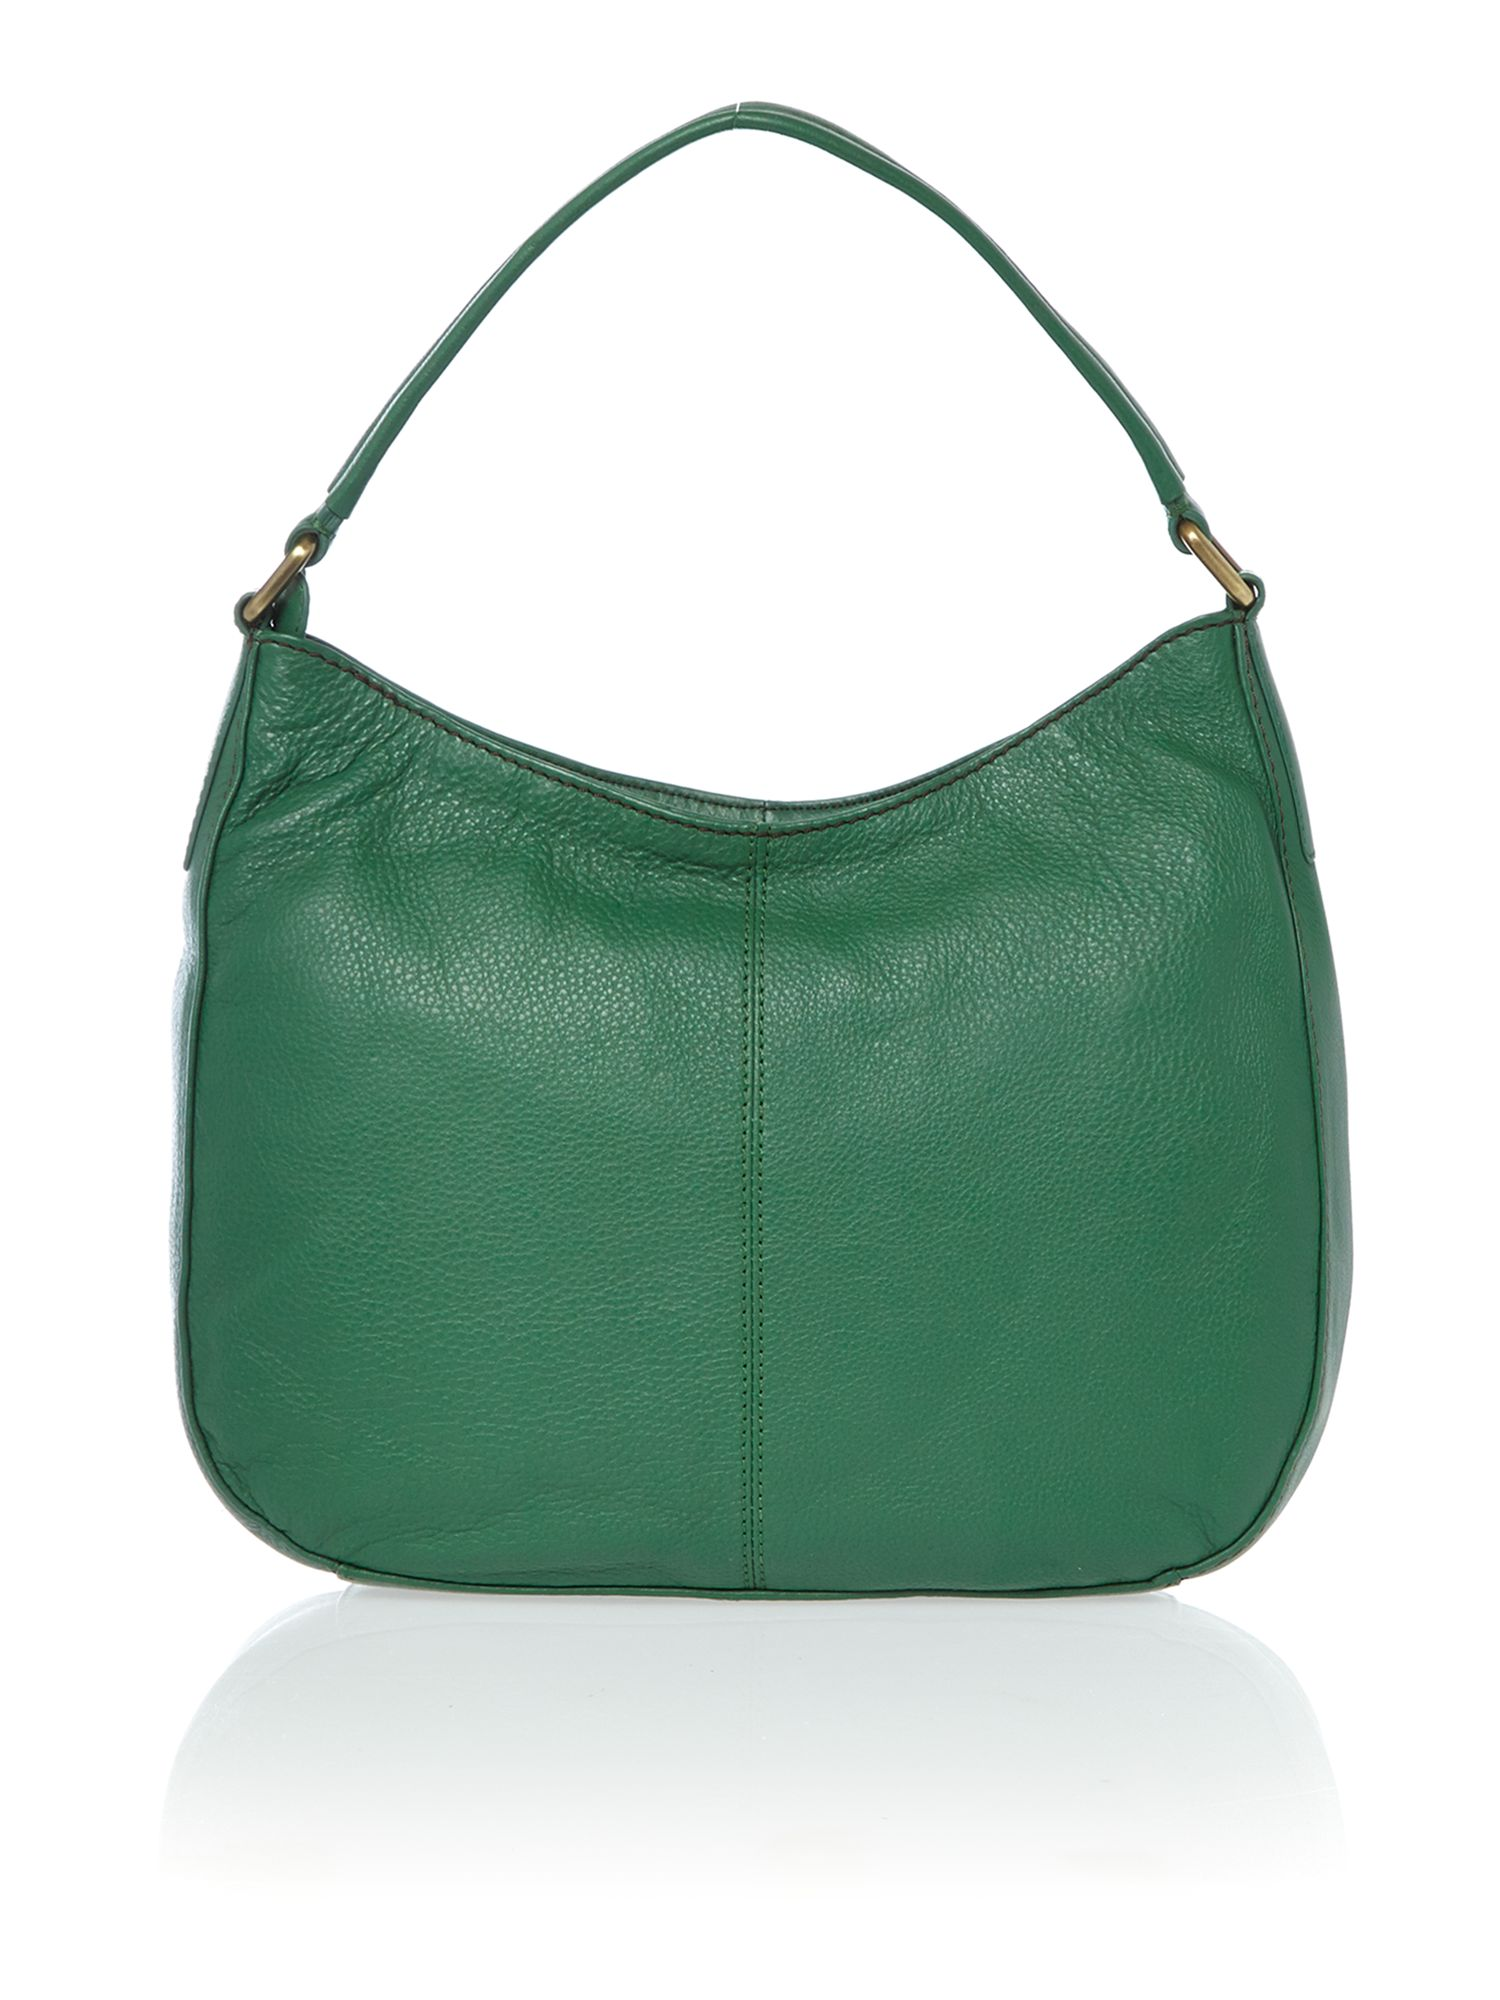 Datchet green hobo bag